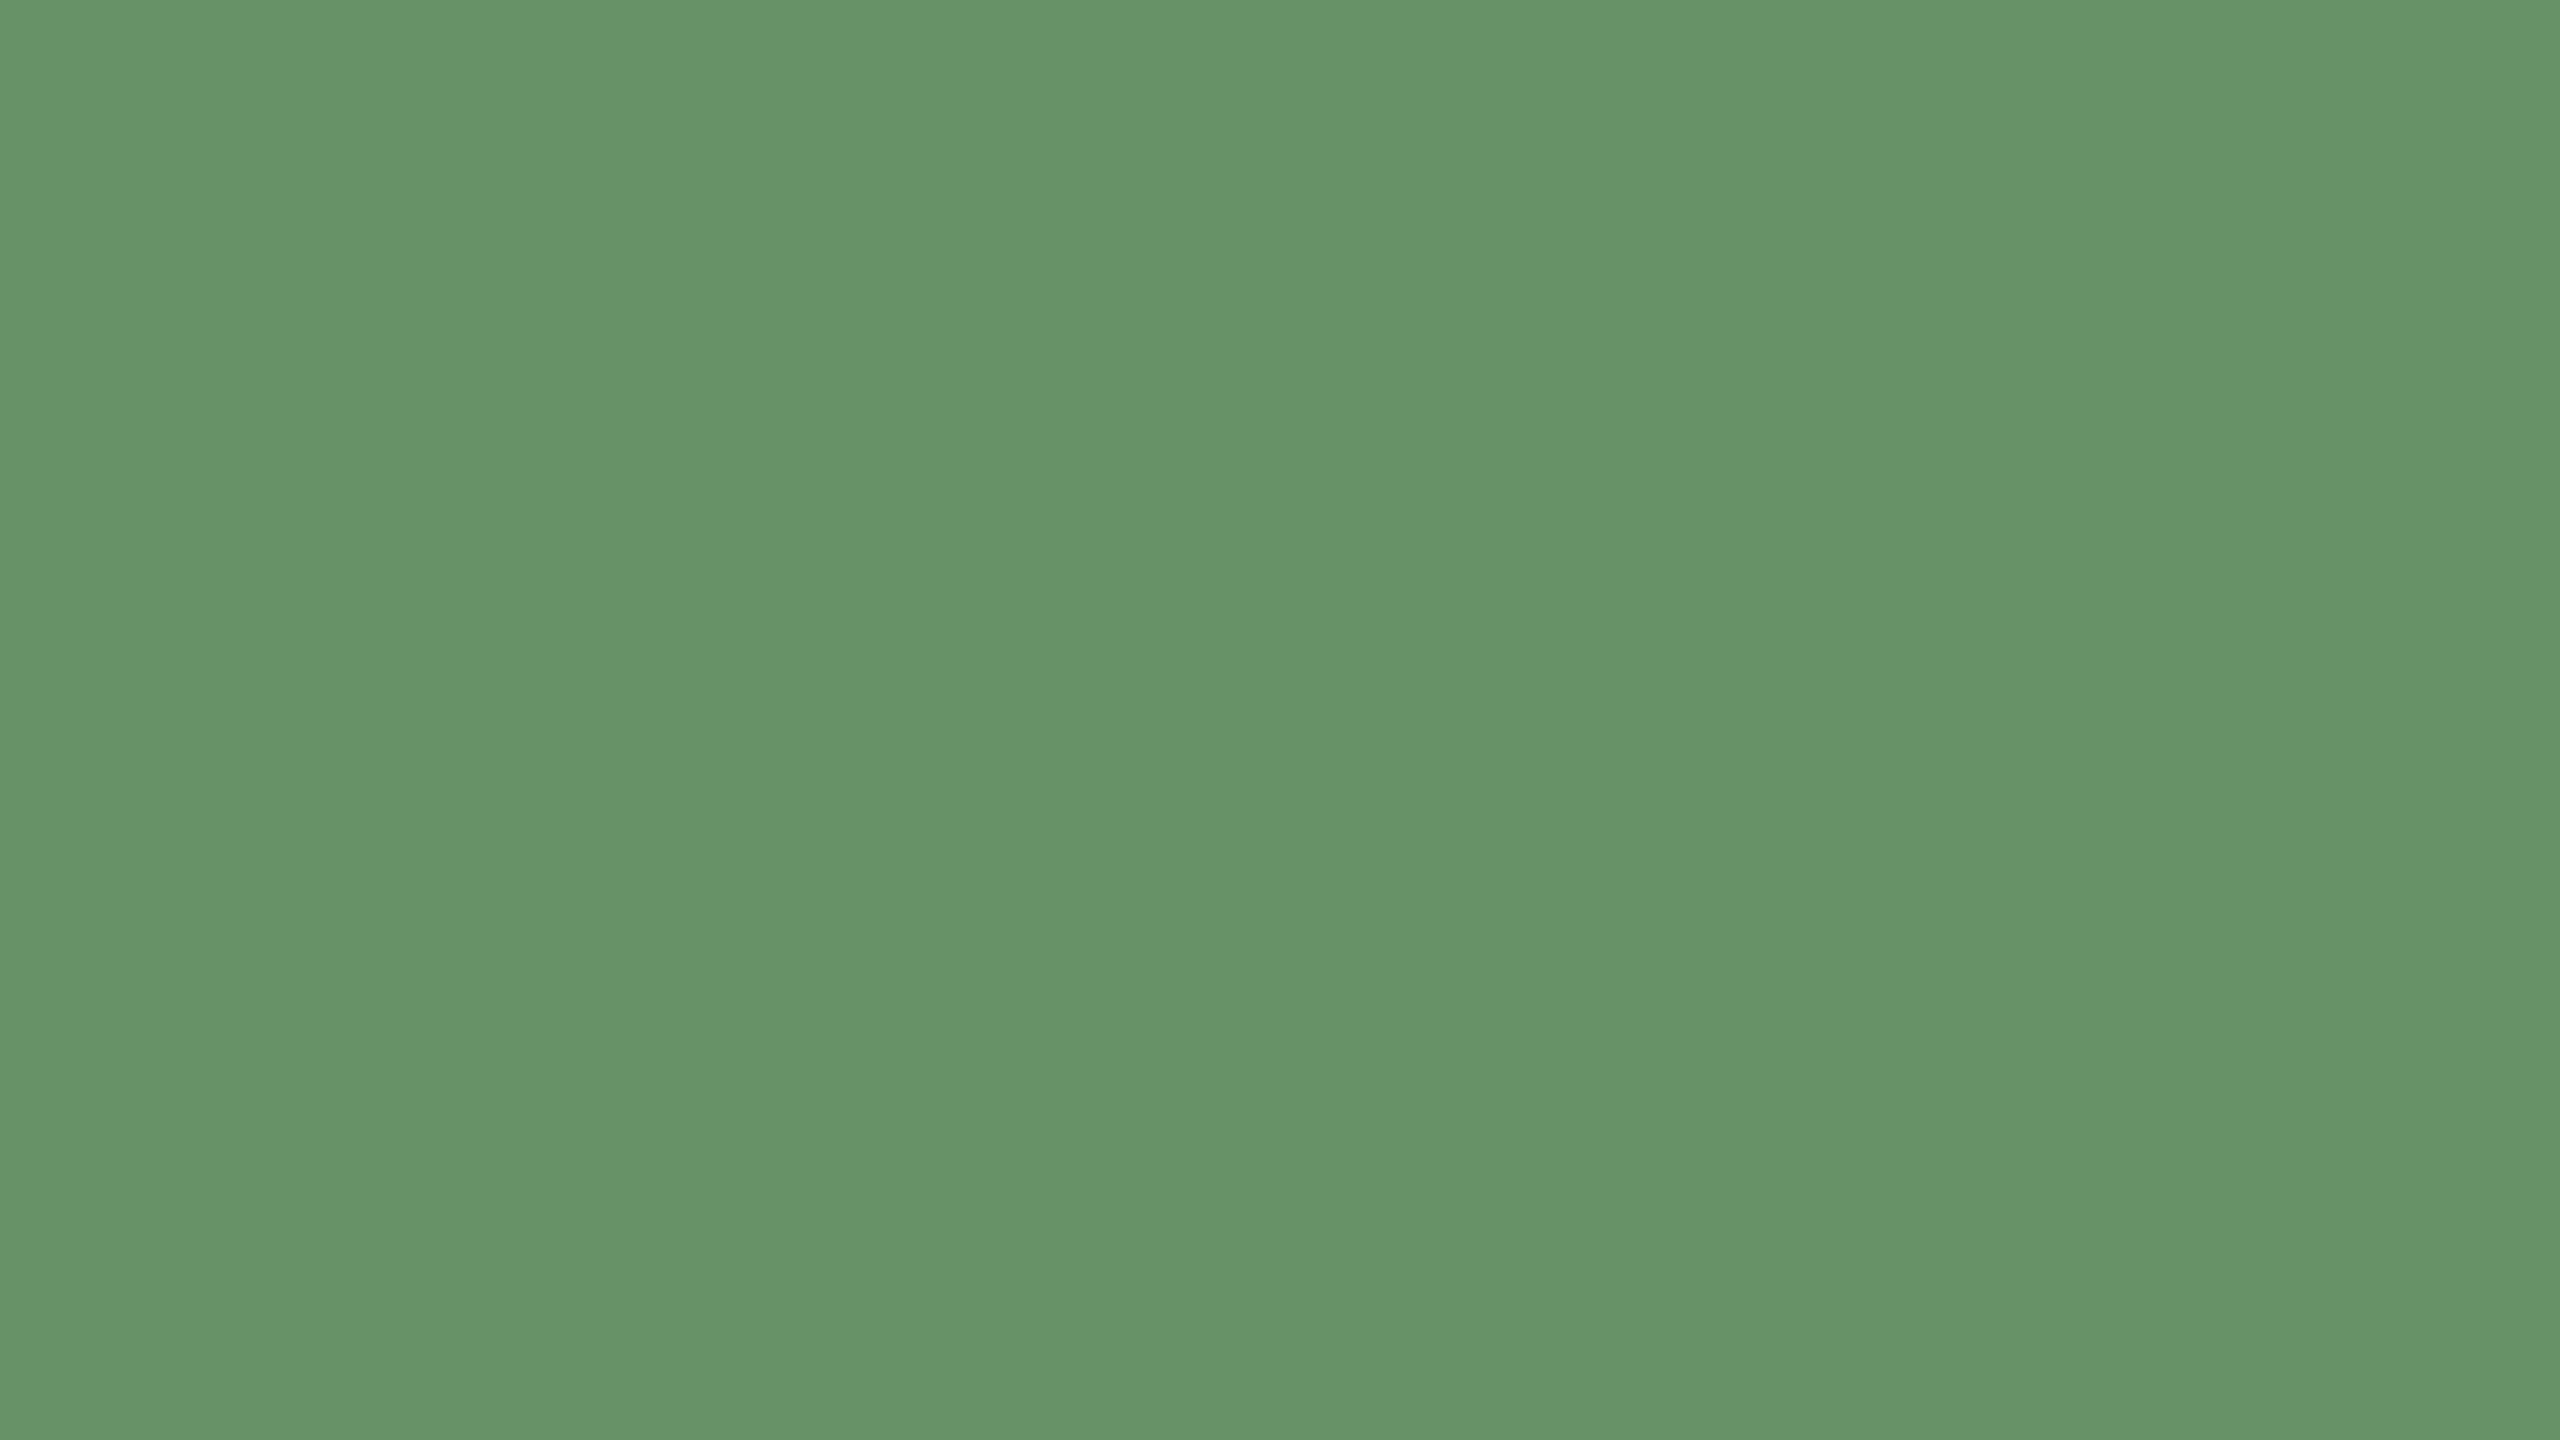 2560x1440 russian green solid color background